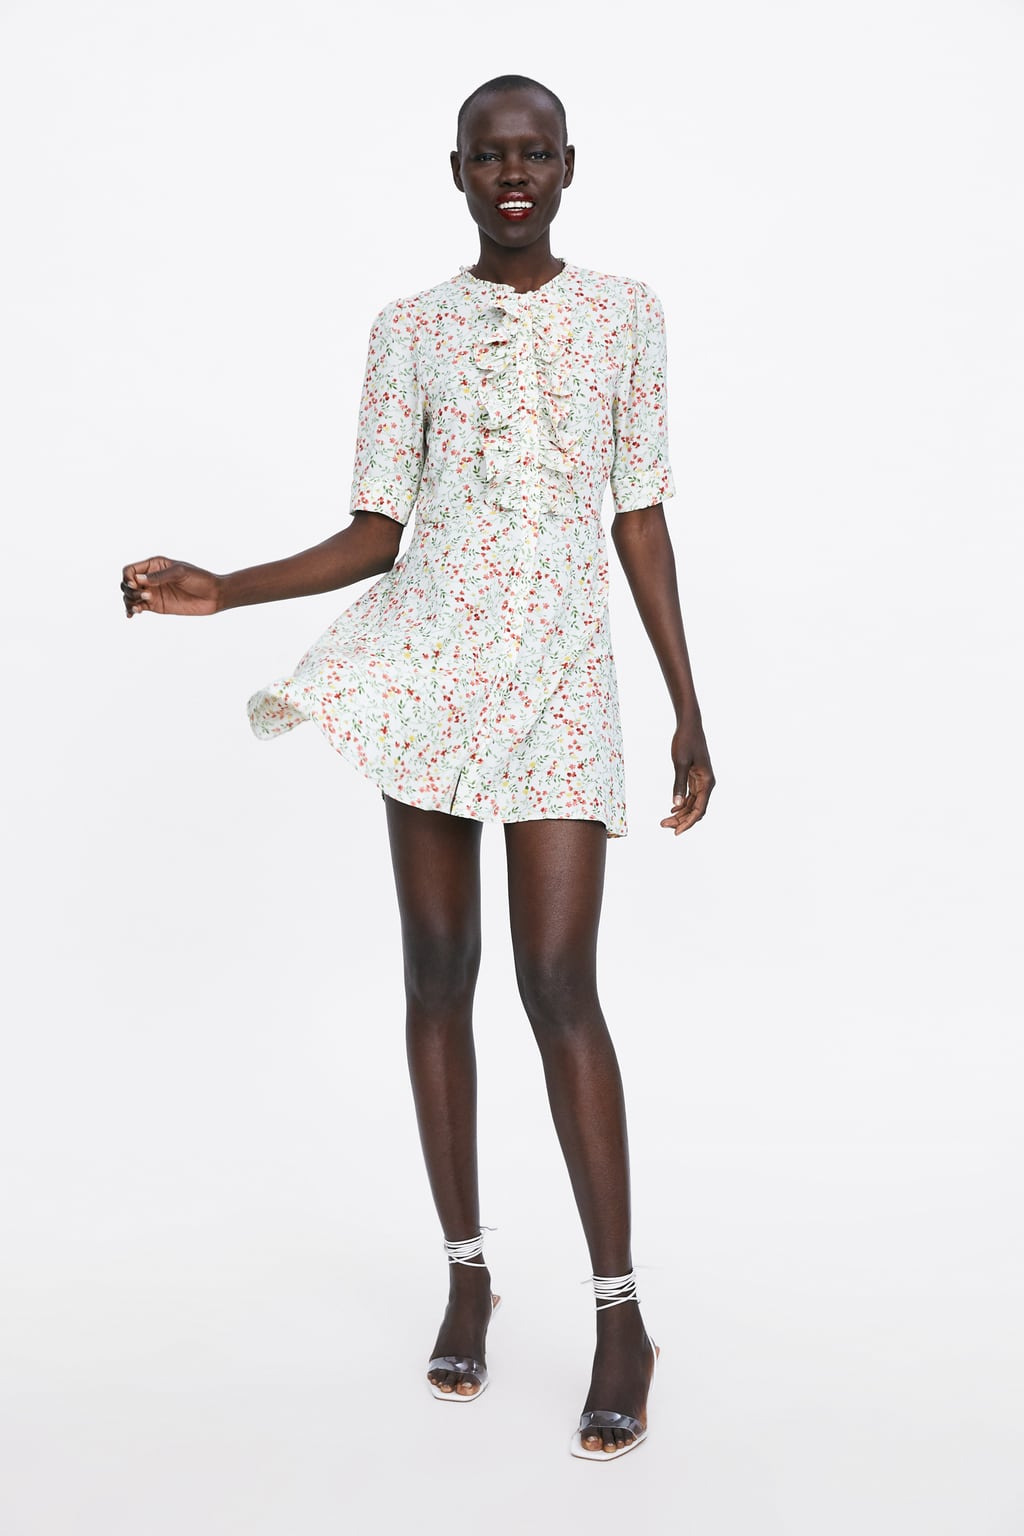 6d8f780bdc9 Image 1 of PRINTED DRESS WITH FRILLS from Zara ...